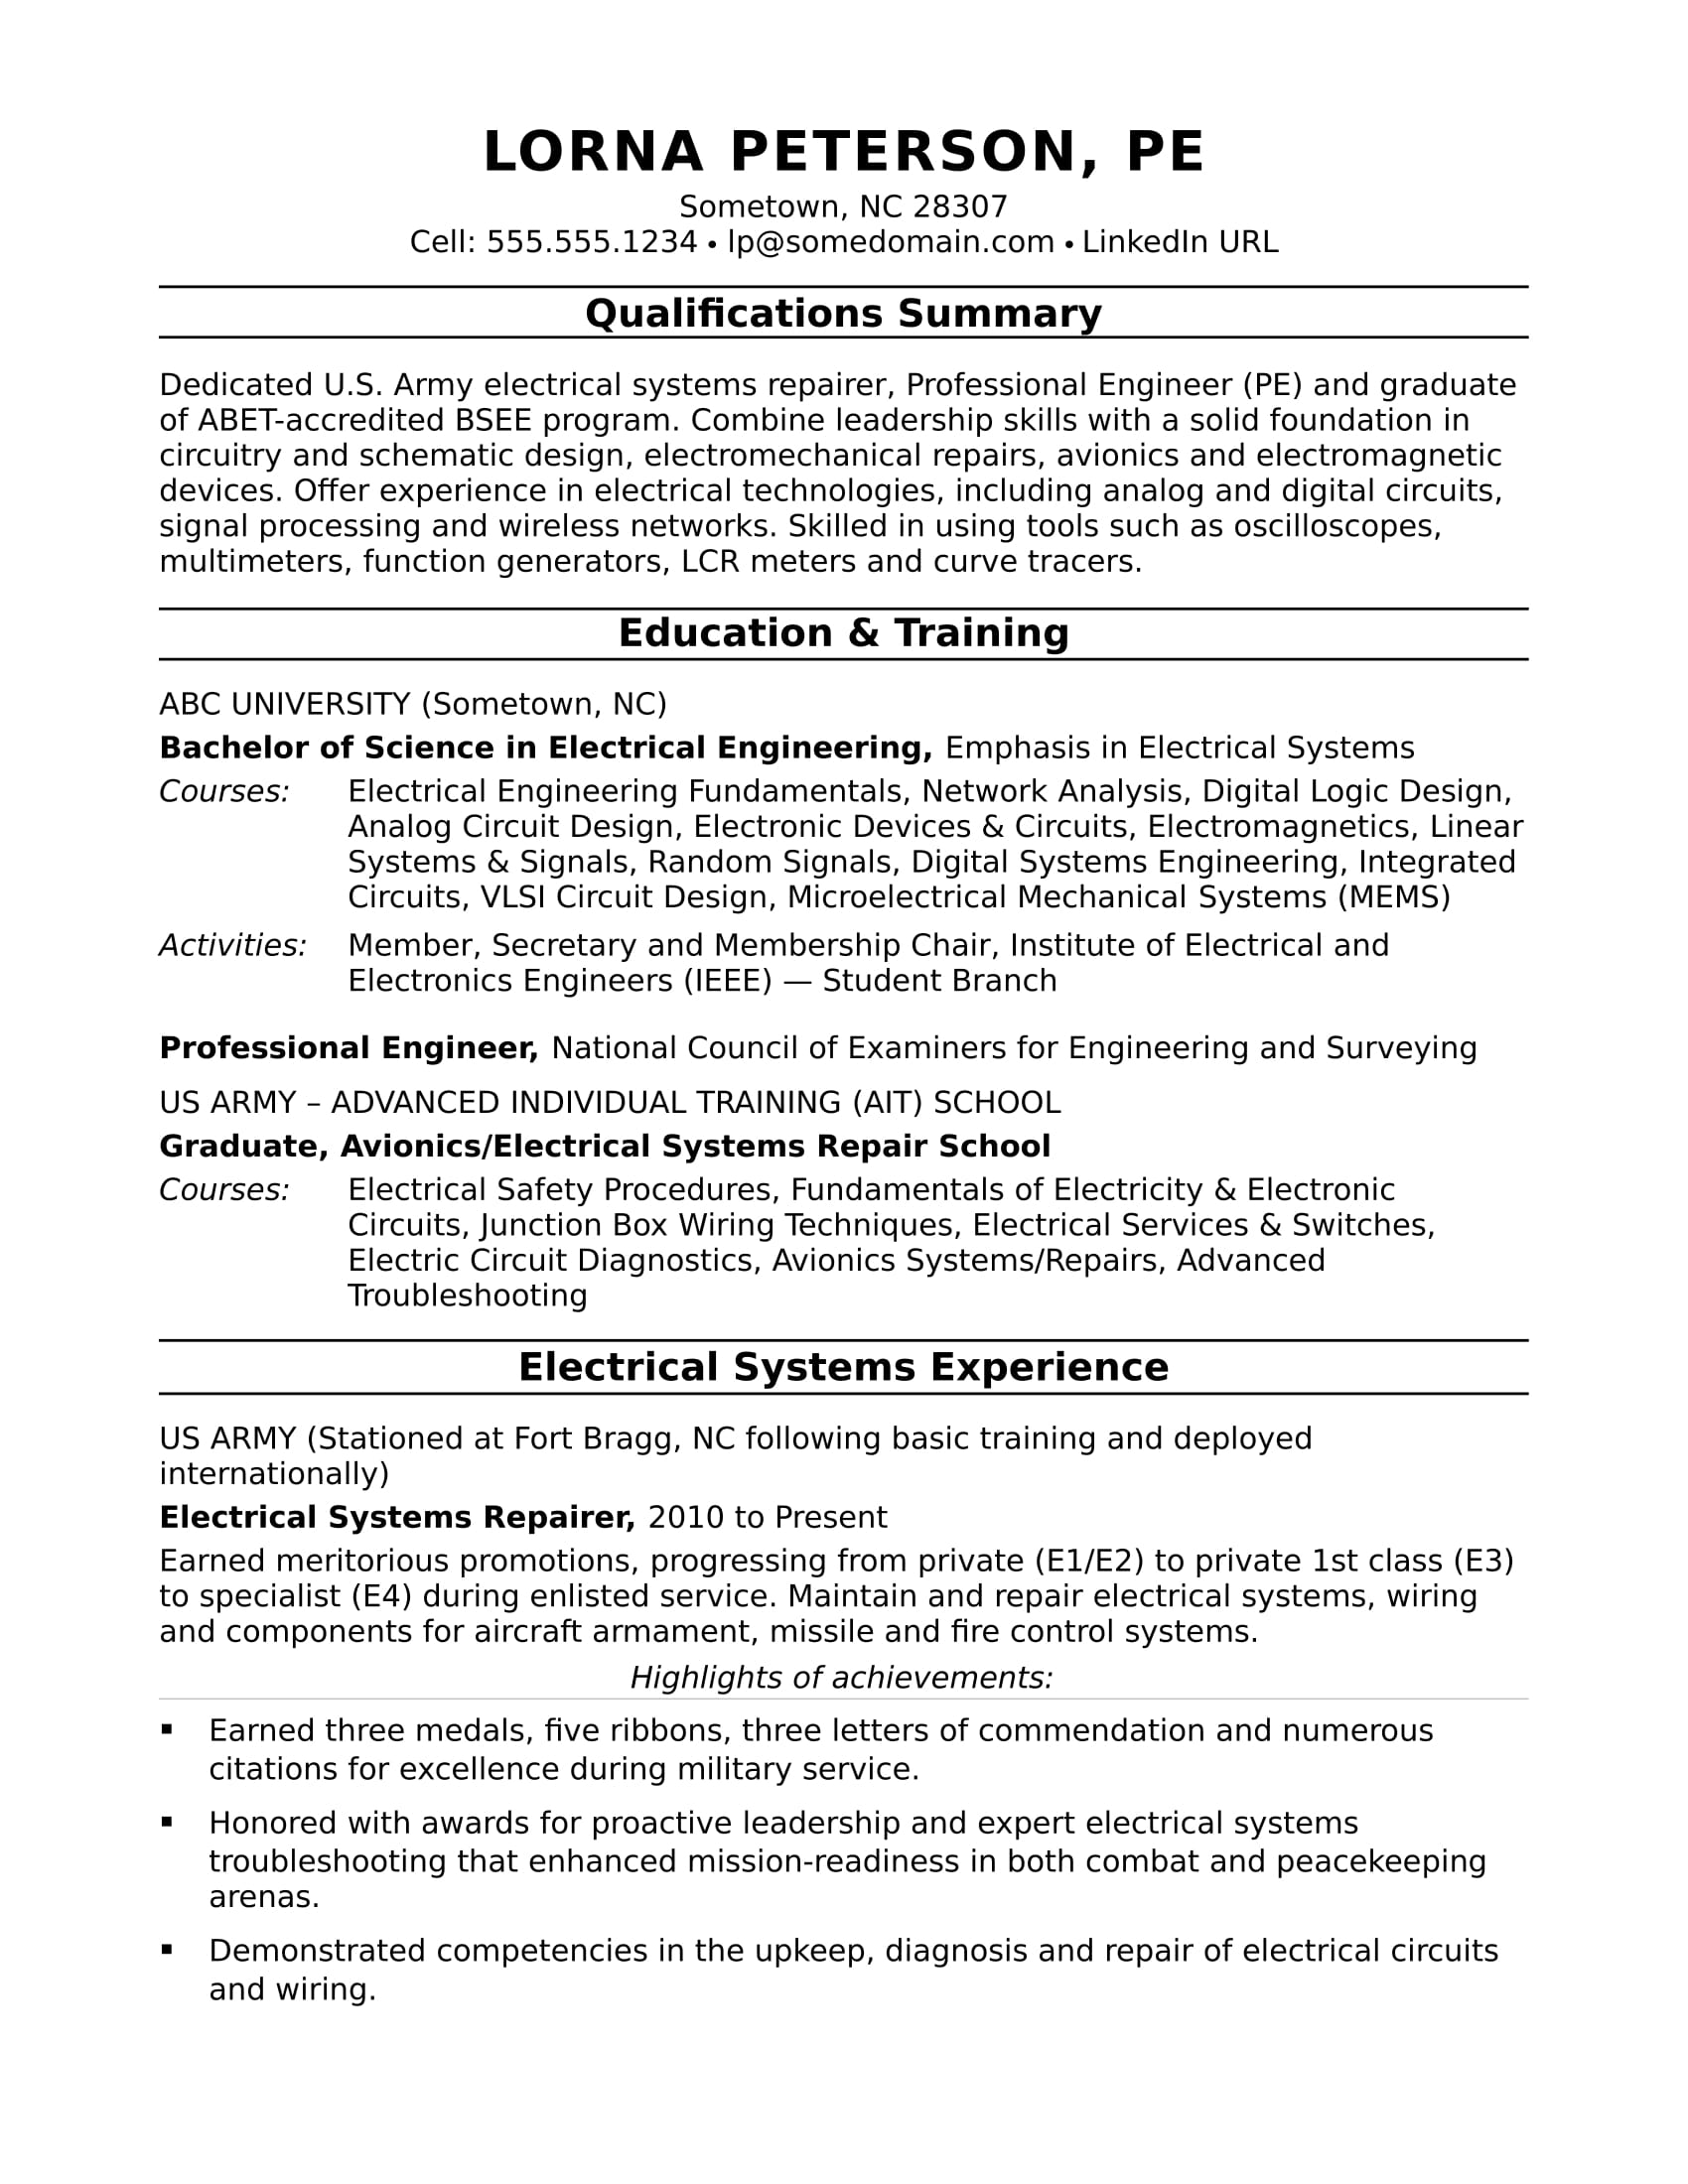 Sample Resume For A Midlevel Electrical Engineer  Entry Level Electrical Engineering Resume